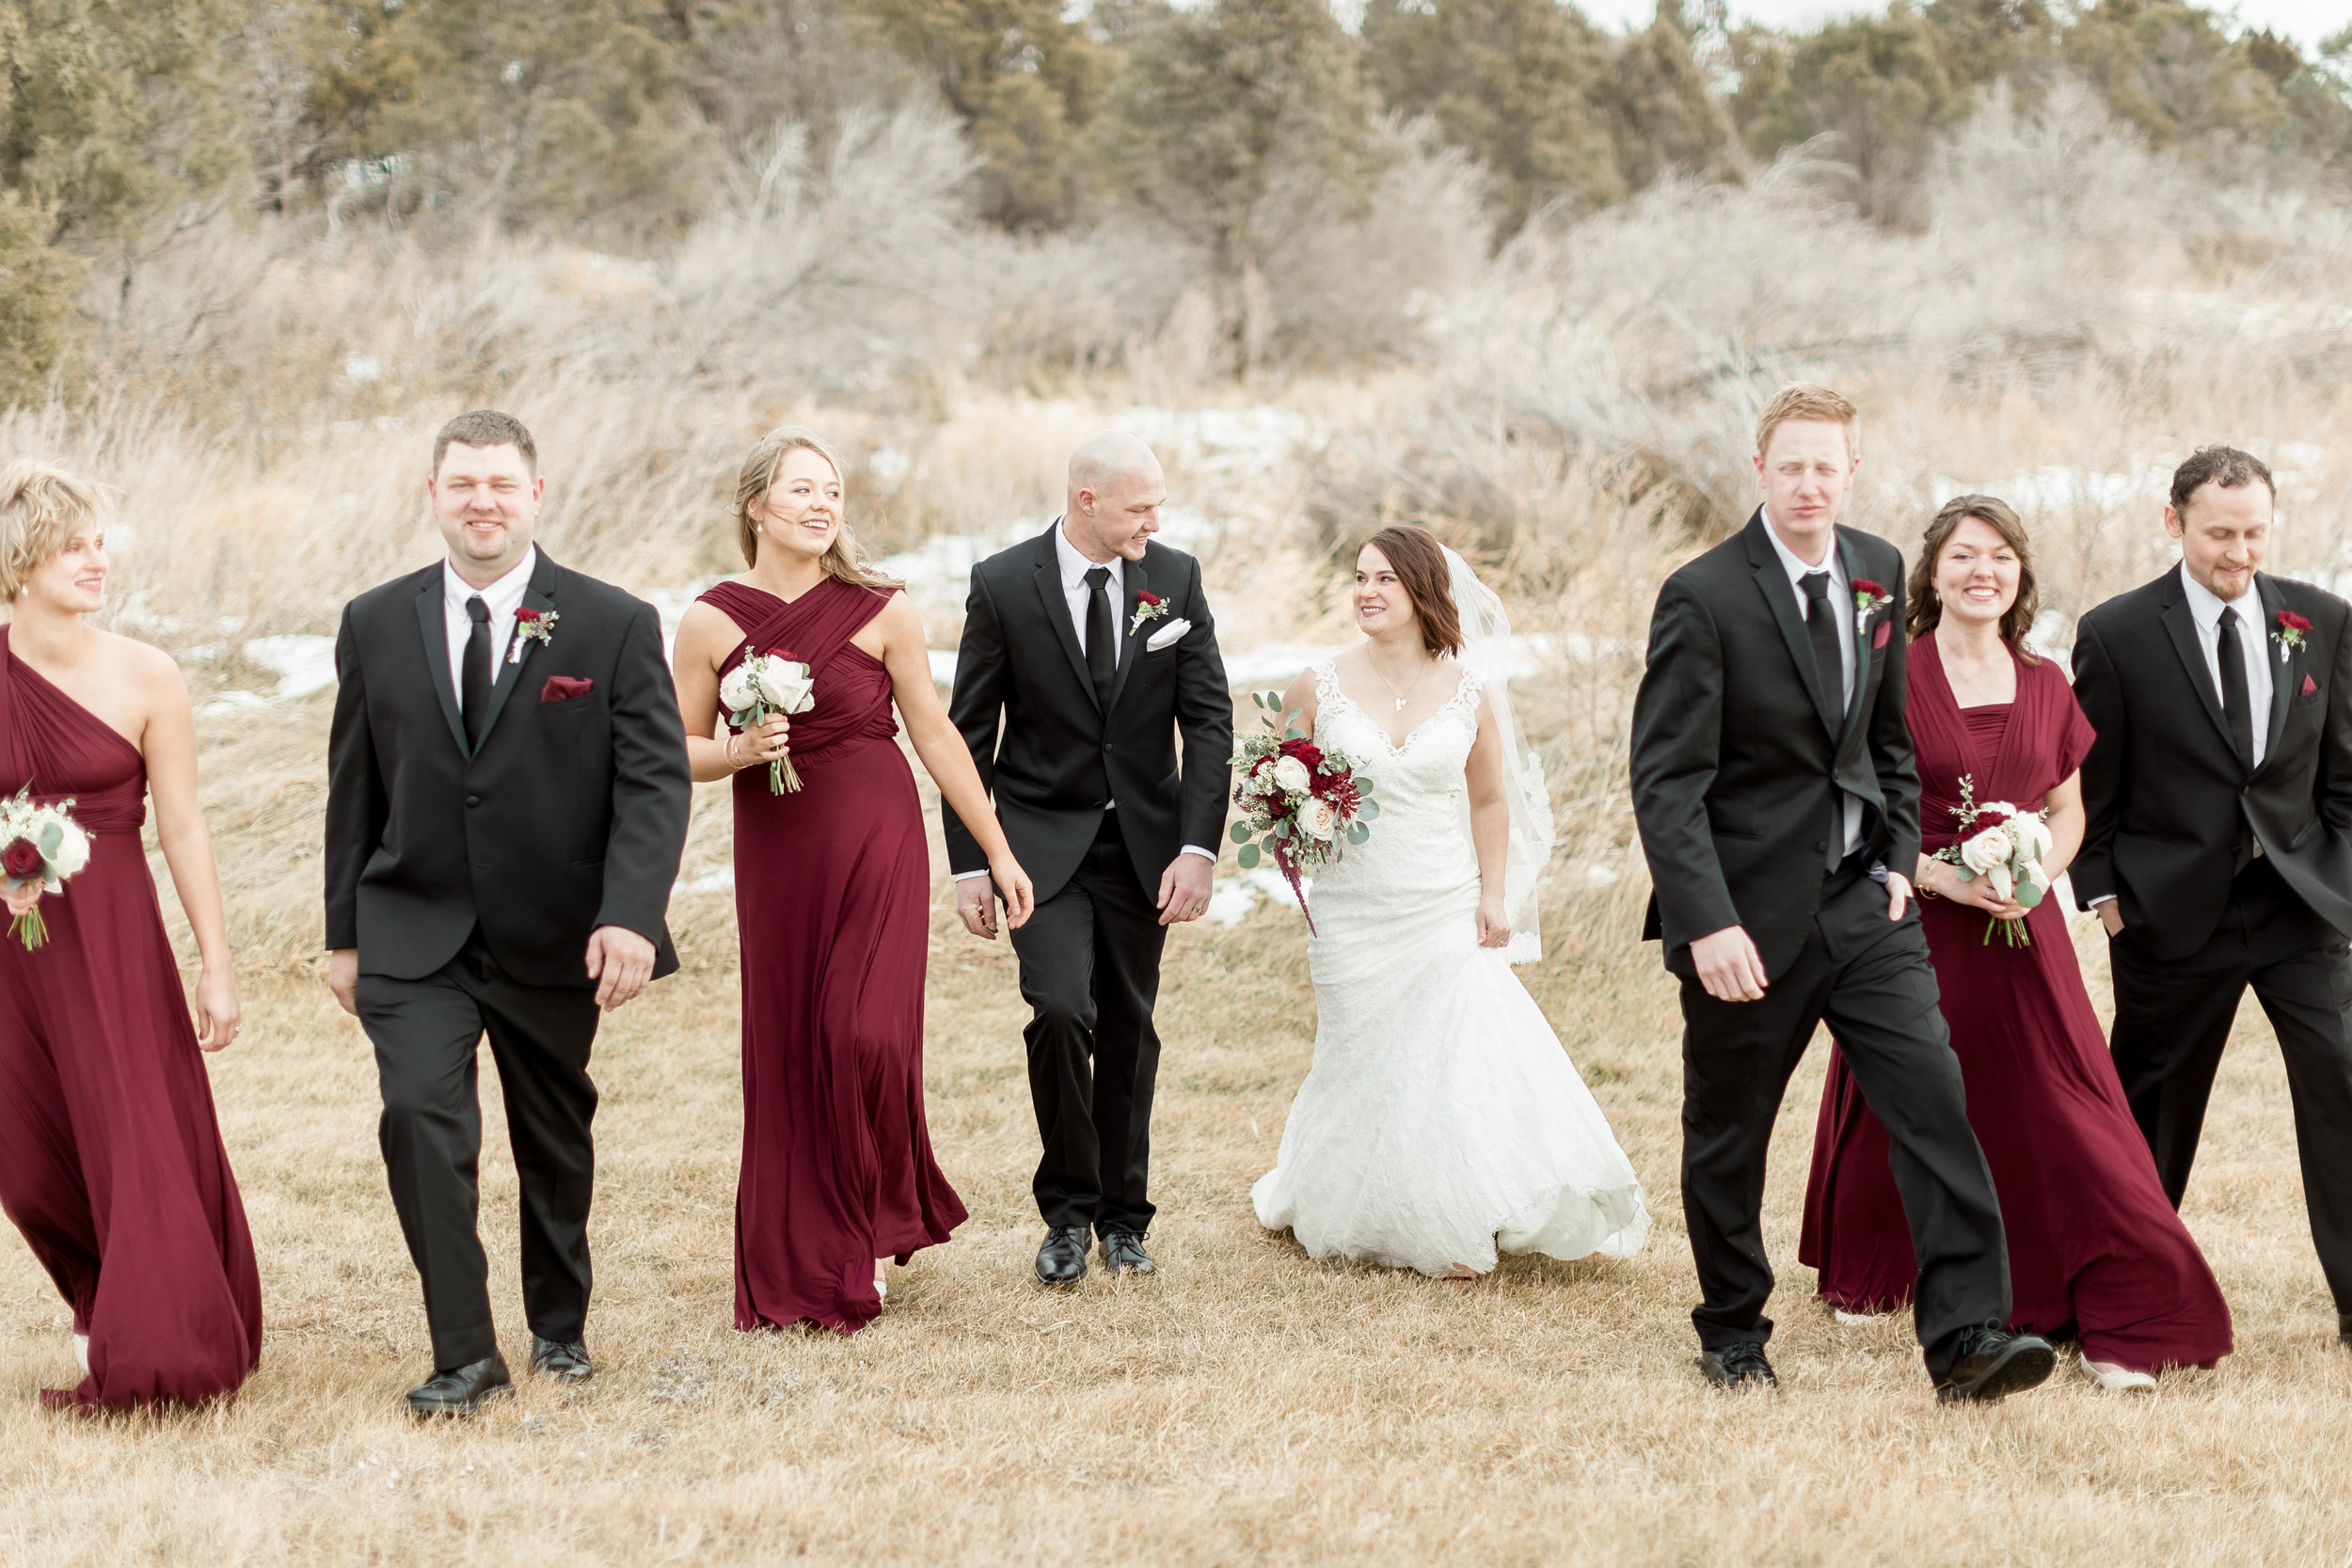 Abigail Berge Photography_KnudtsonWedding-437.jpg